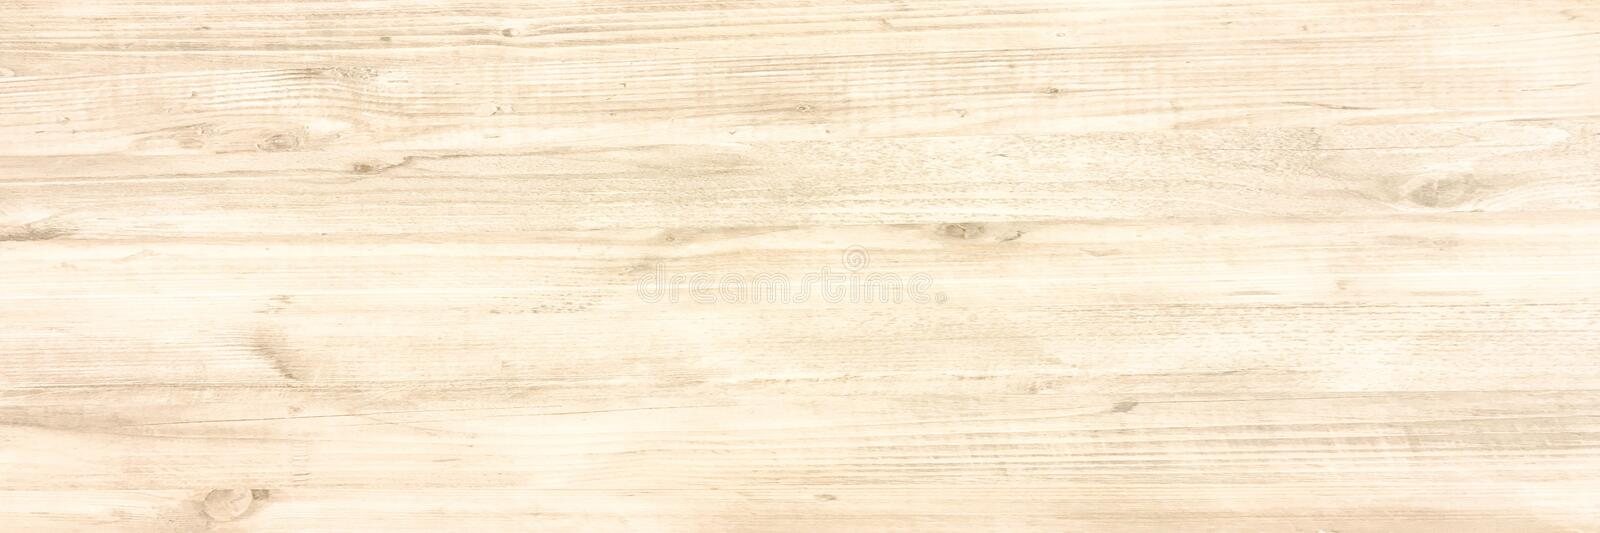 White Organic Wood Texture. Light Wooden Background. Old Washed Wood royalty free stock image